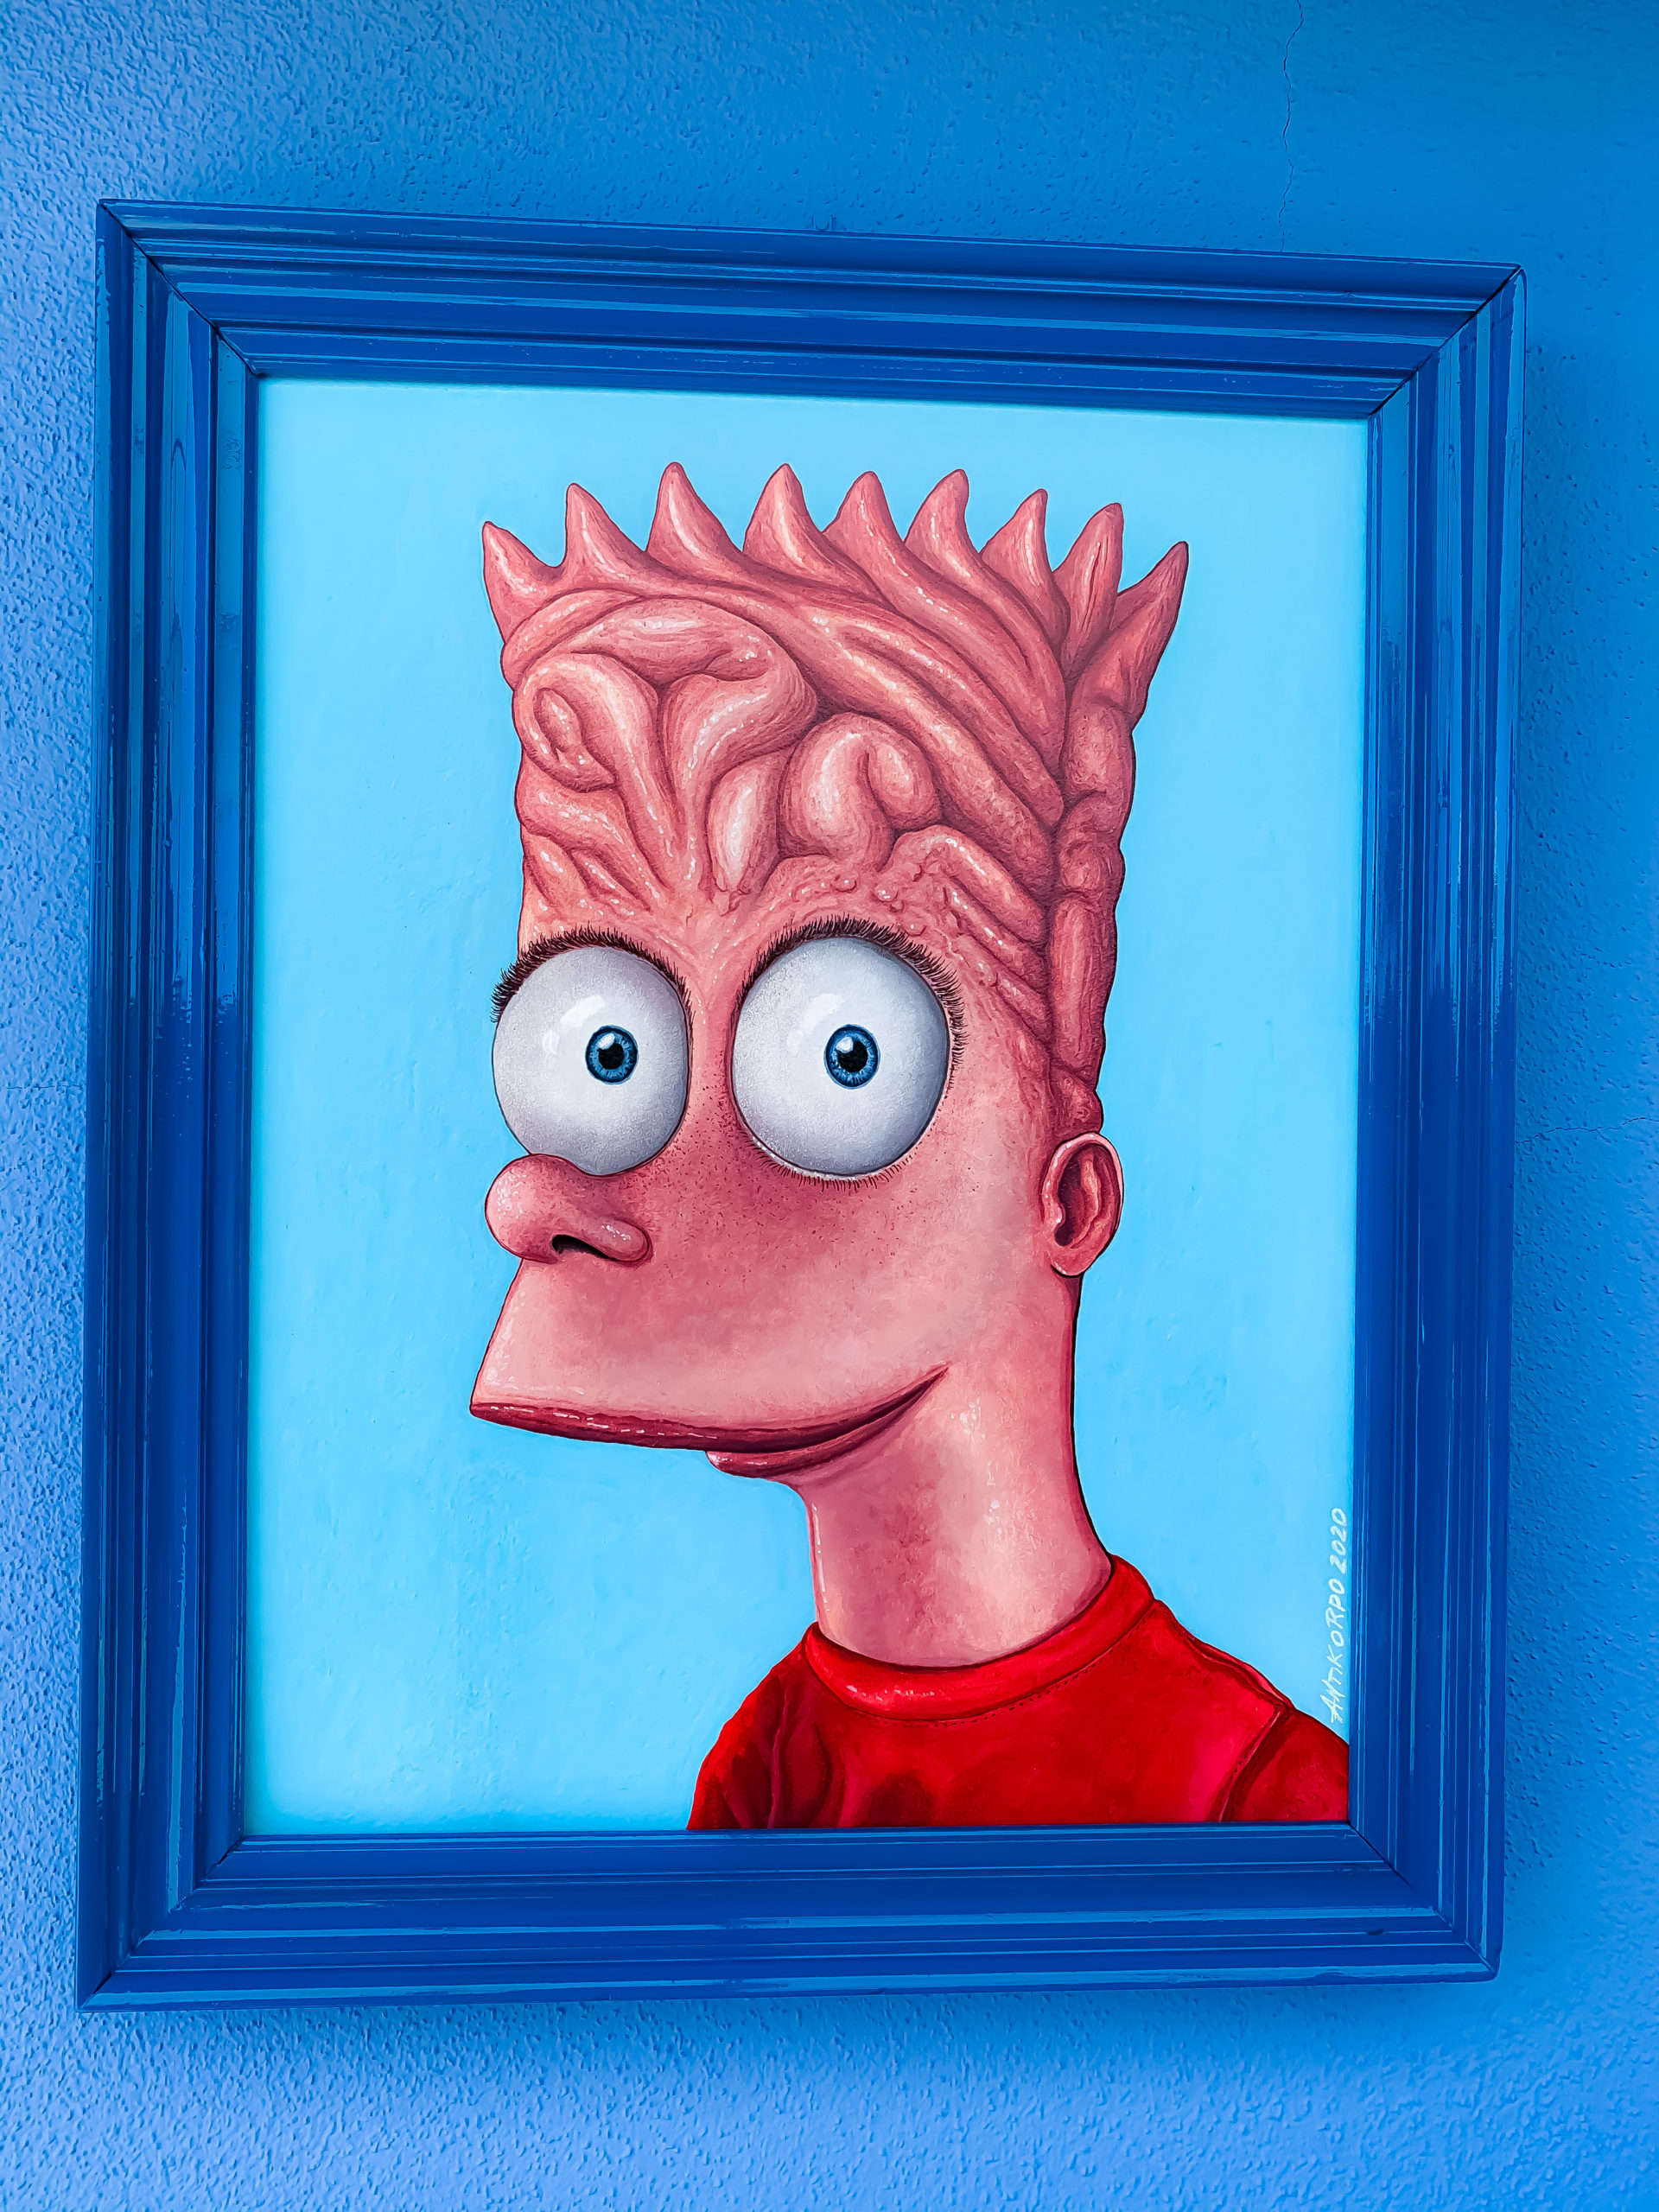 INTELLIGENT BART ACRILIC ON WOOD PANNEL 40X50cm